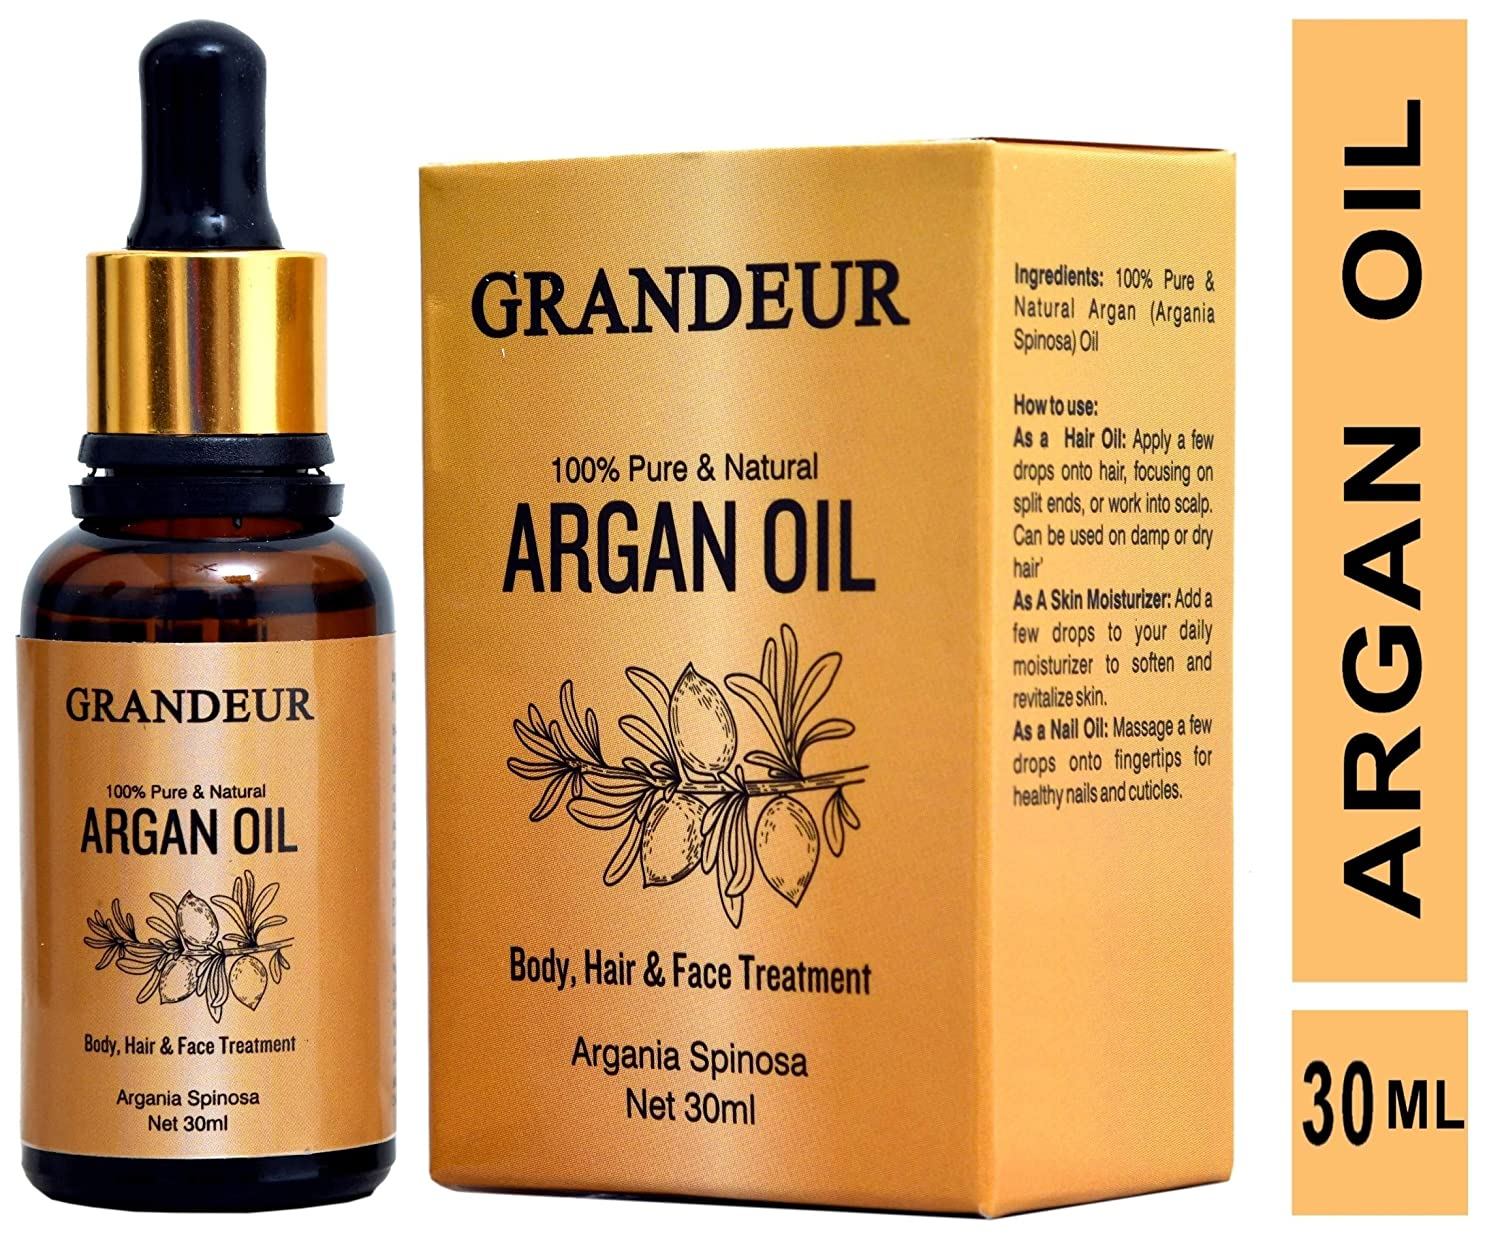 Grandeur 100% Pure & Natural Moroccan Argan Oil 30ml, for